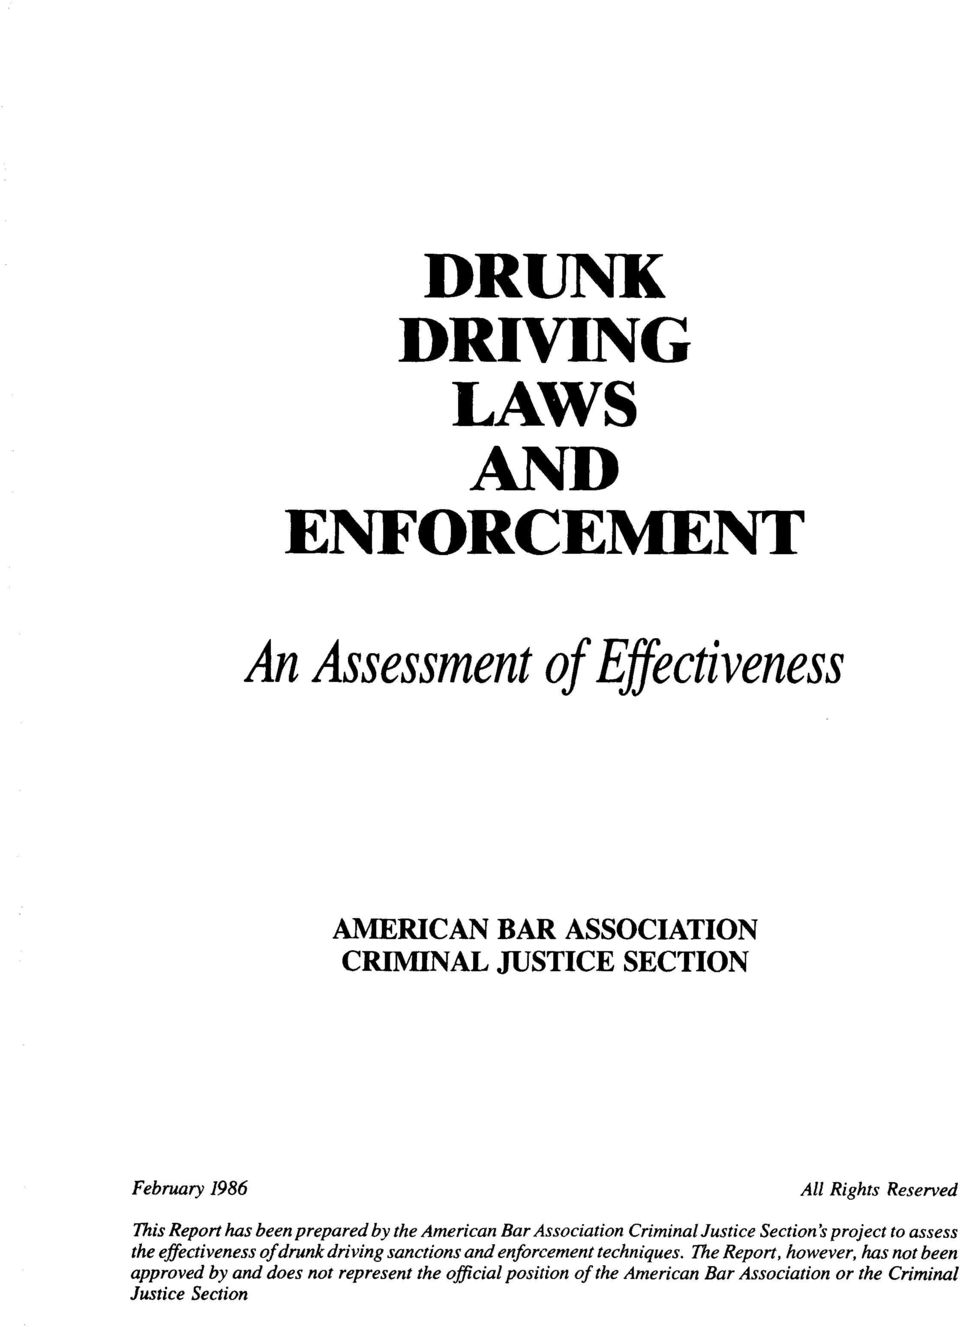 Section's project to assess the effectiveness of drunk driving sanctions and enforcement techniques.